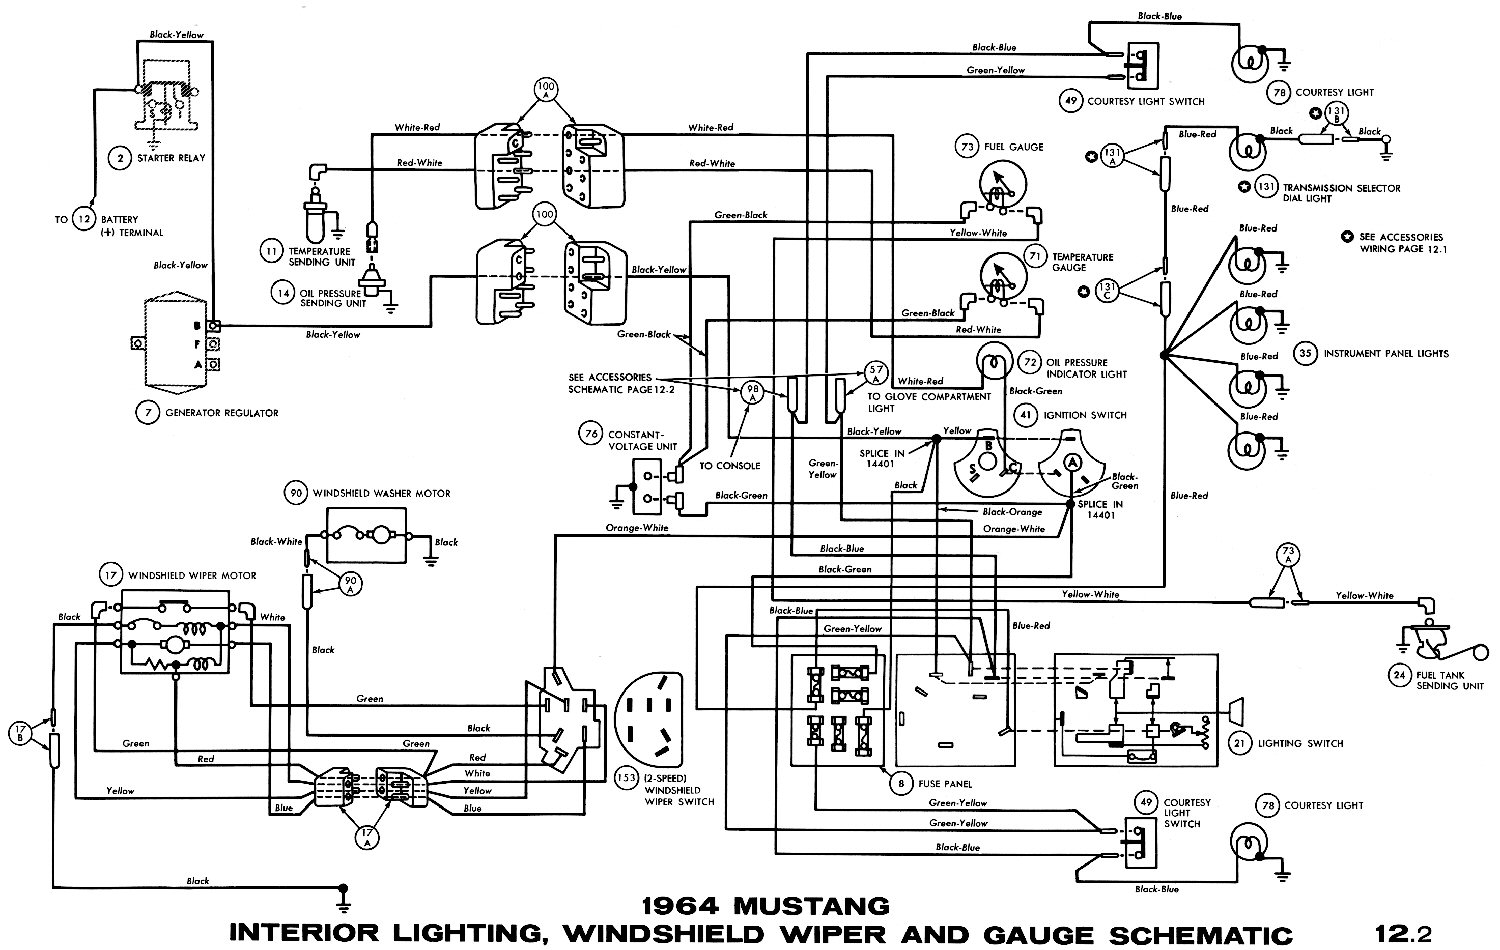 1964k 1966 mustang wiring diagram 1967 mustang wiring schematic \u2022 wiring 1967 mustang ignition wiring diagram at bayanpartner.co